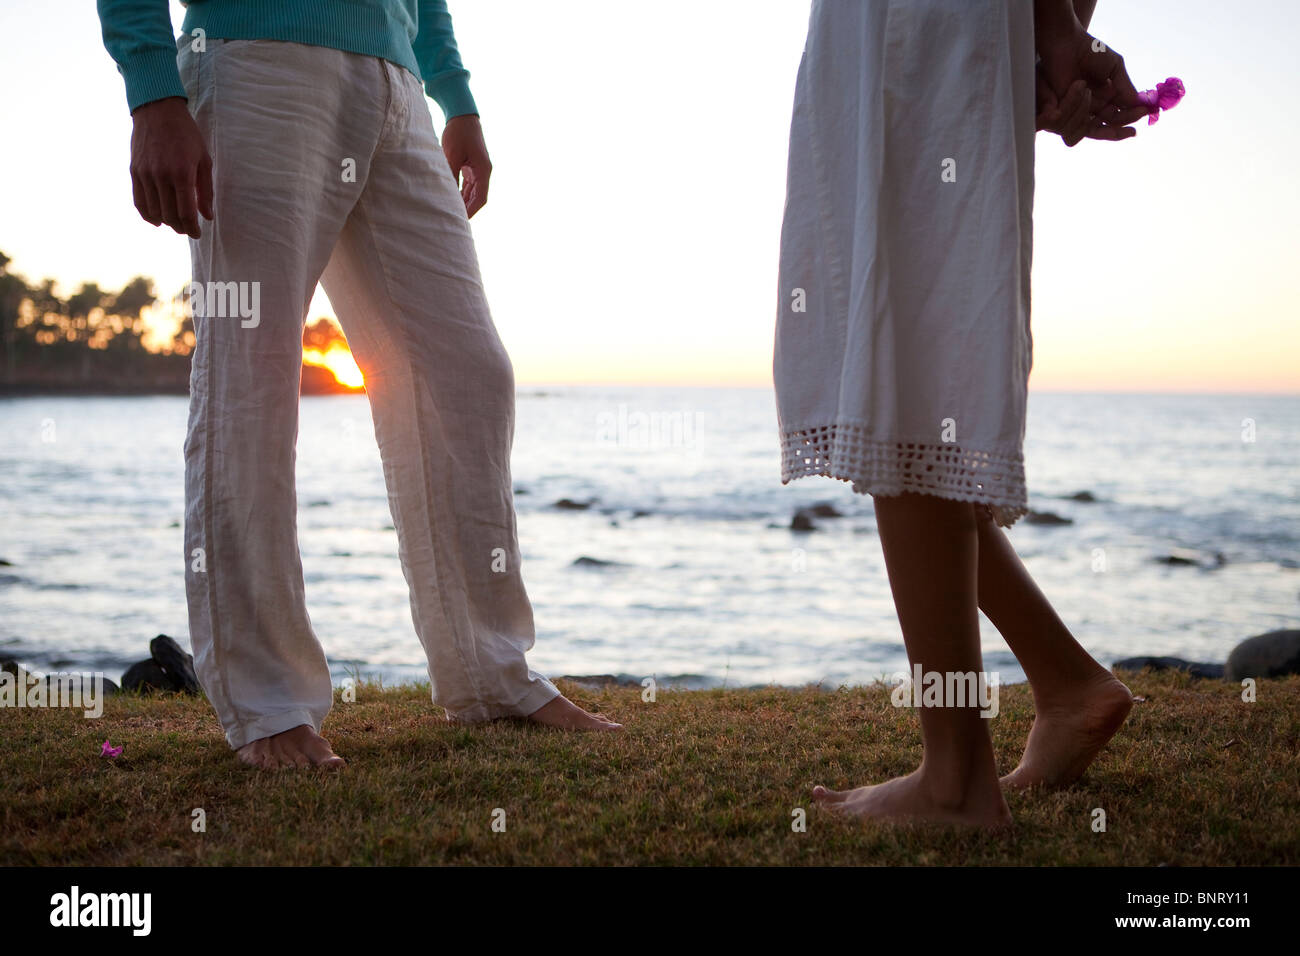 A man talks with a shy woman near the ocean at sunset. - Stock Image